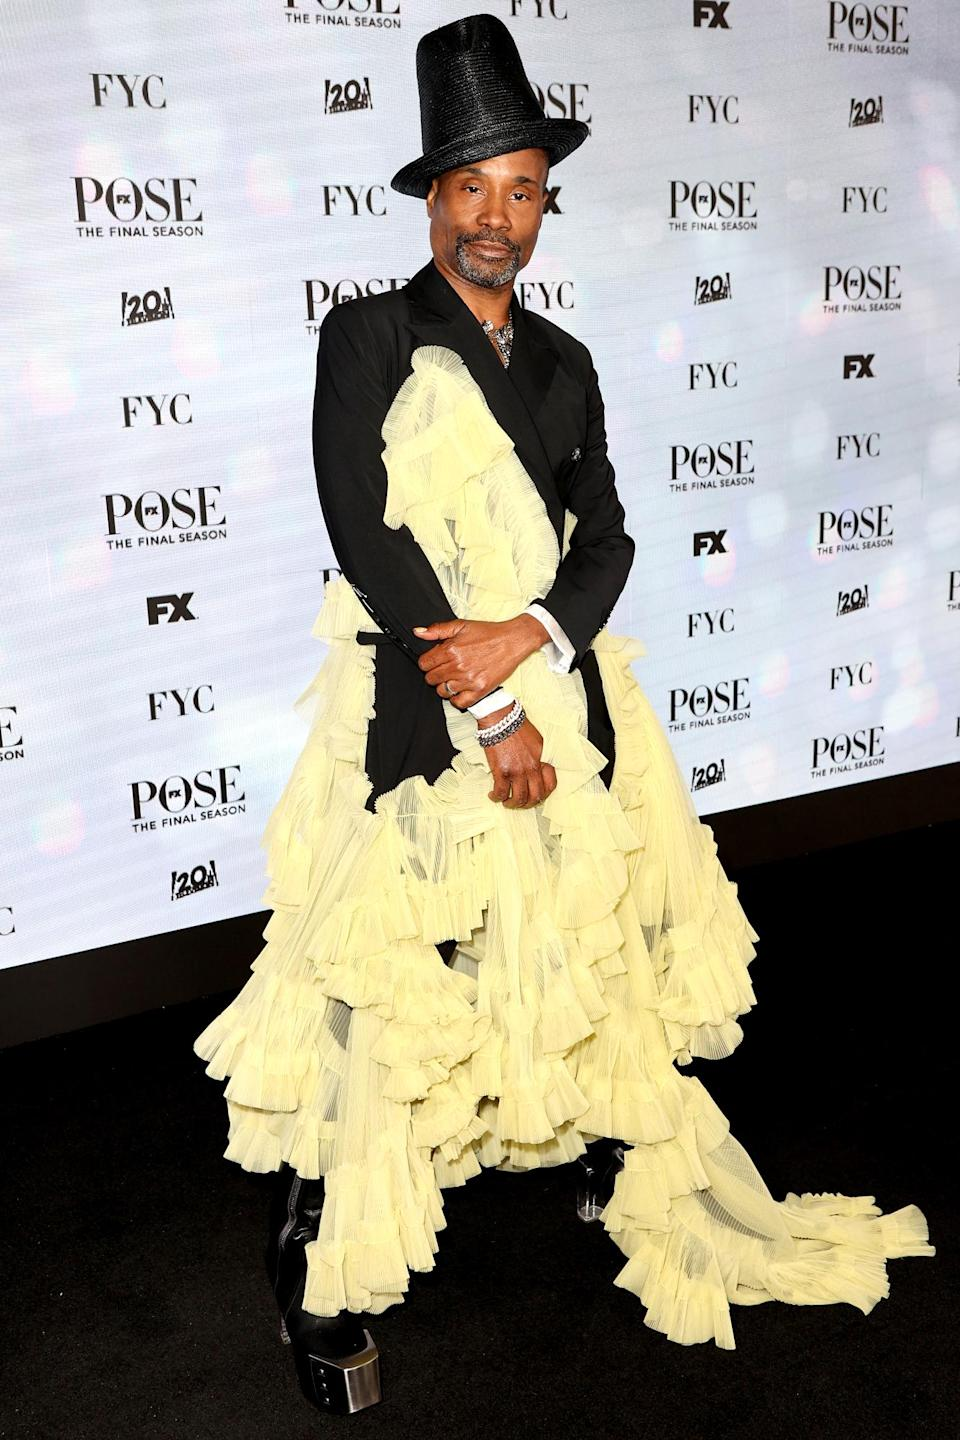 <p>Billy Porter celebrates the <em>Pose</em> finale at the FYC Drive-in Series in Pasadena.</p>